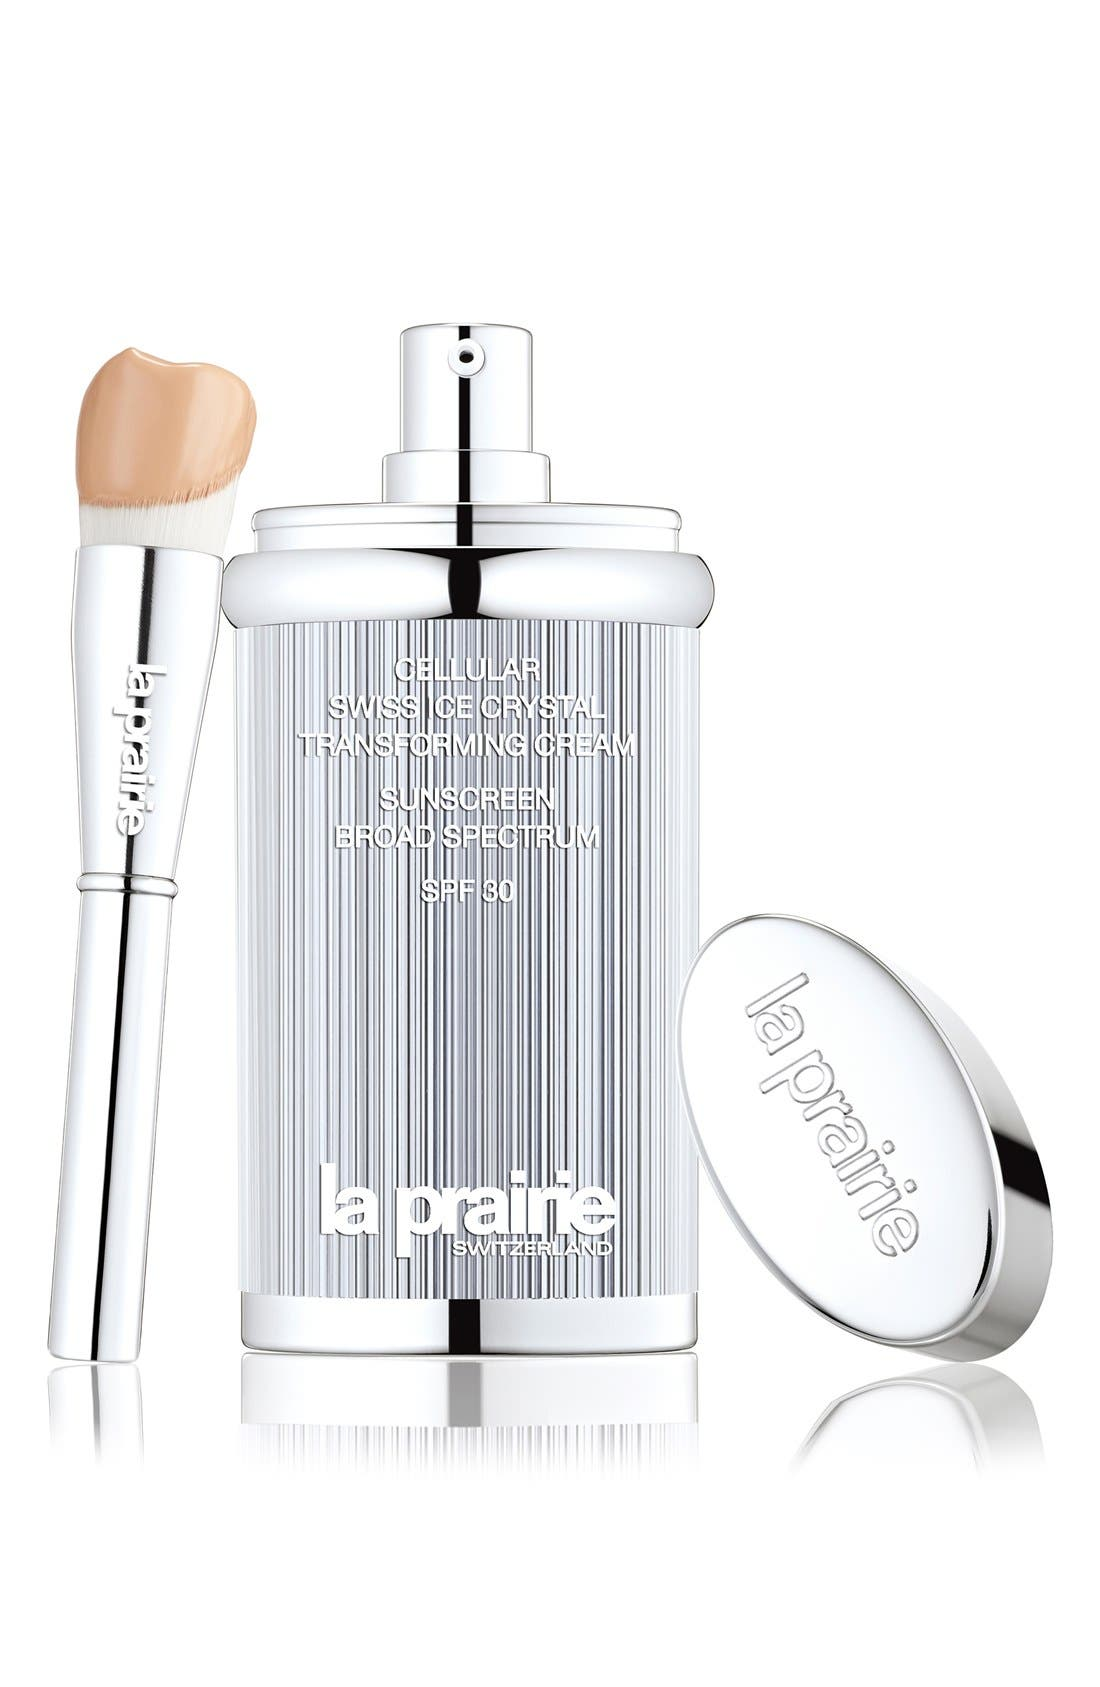 La Prairie Cellular Swiss Ice Crystal Transforming Cream Sunscreen Broad Spectrum SPF 30